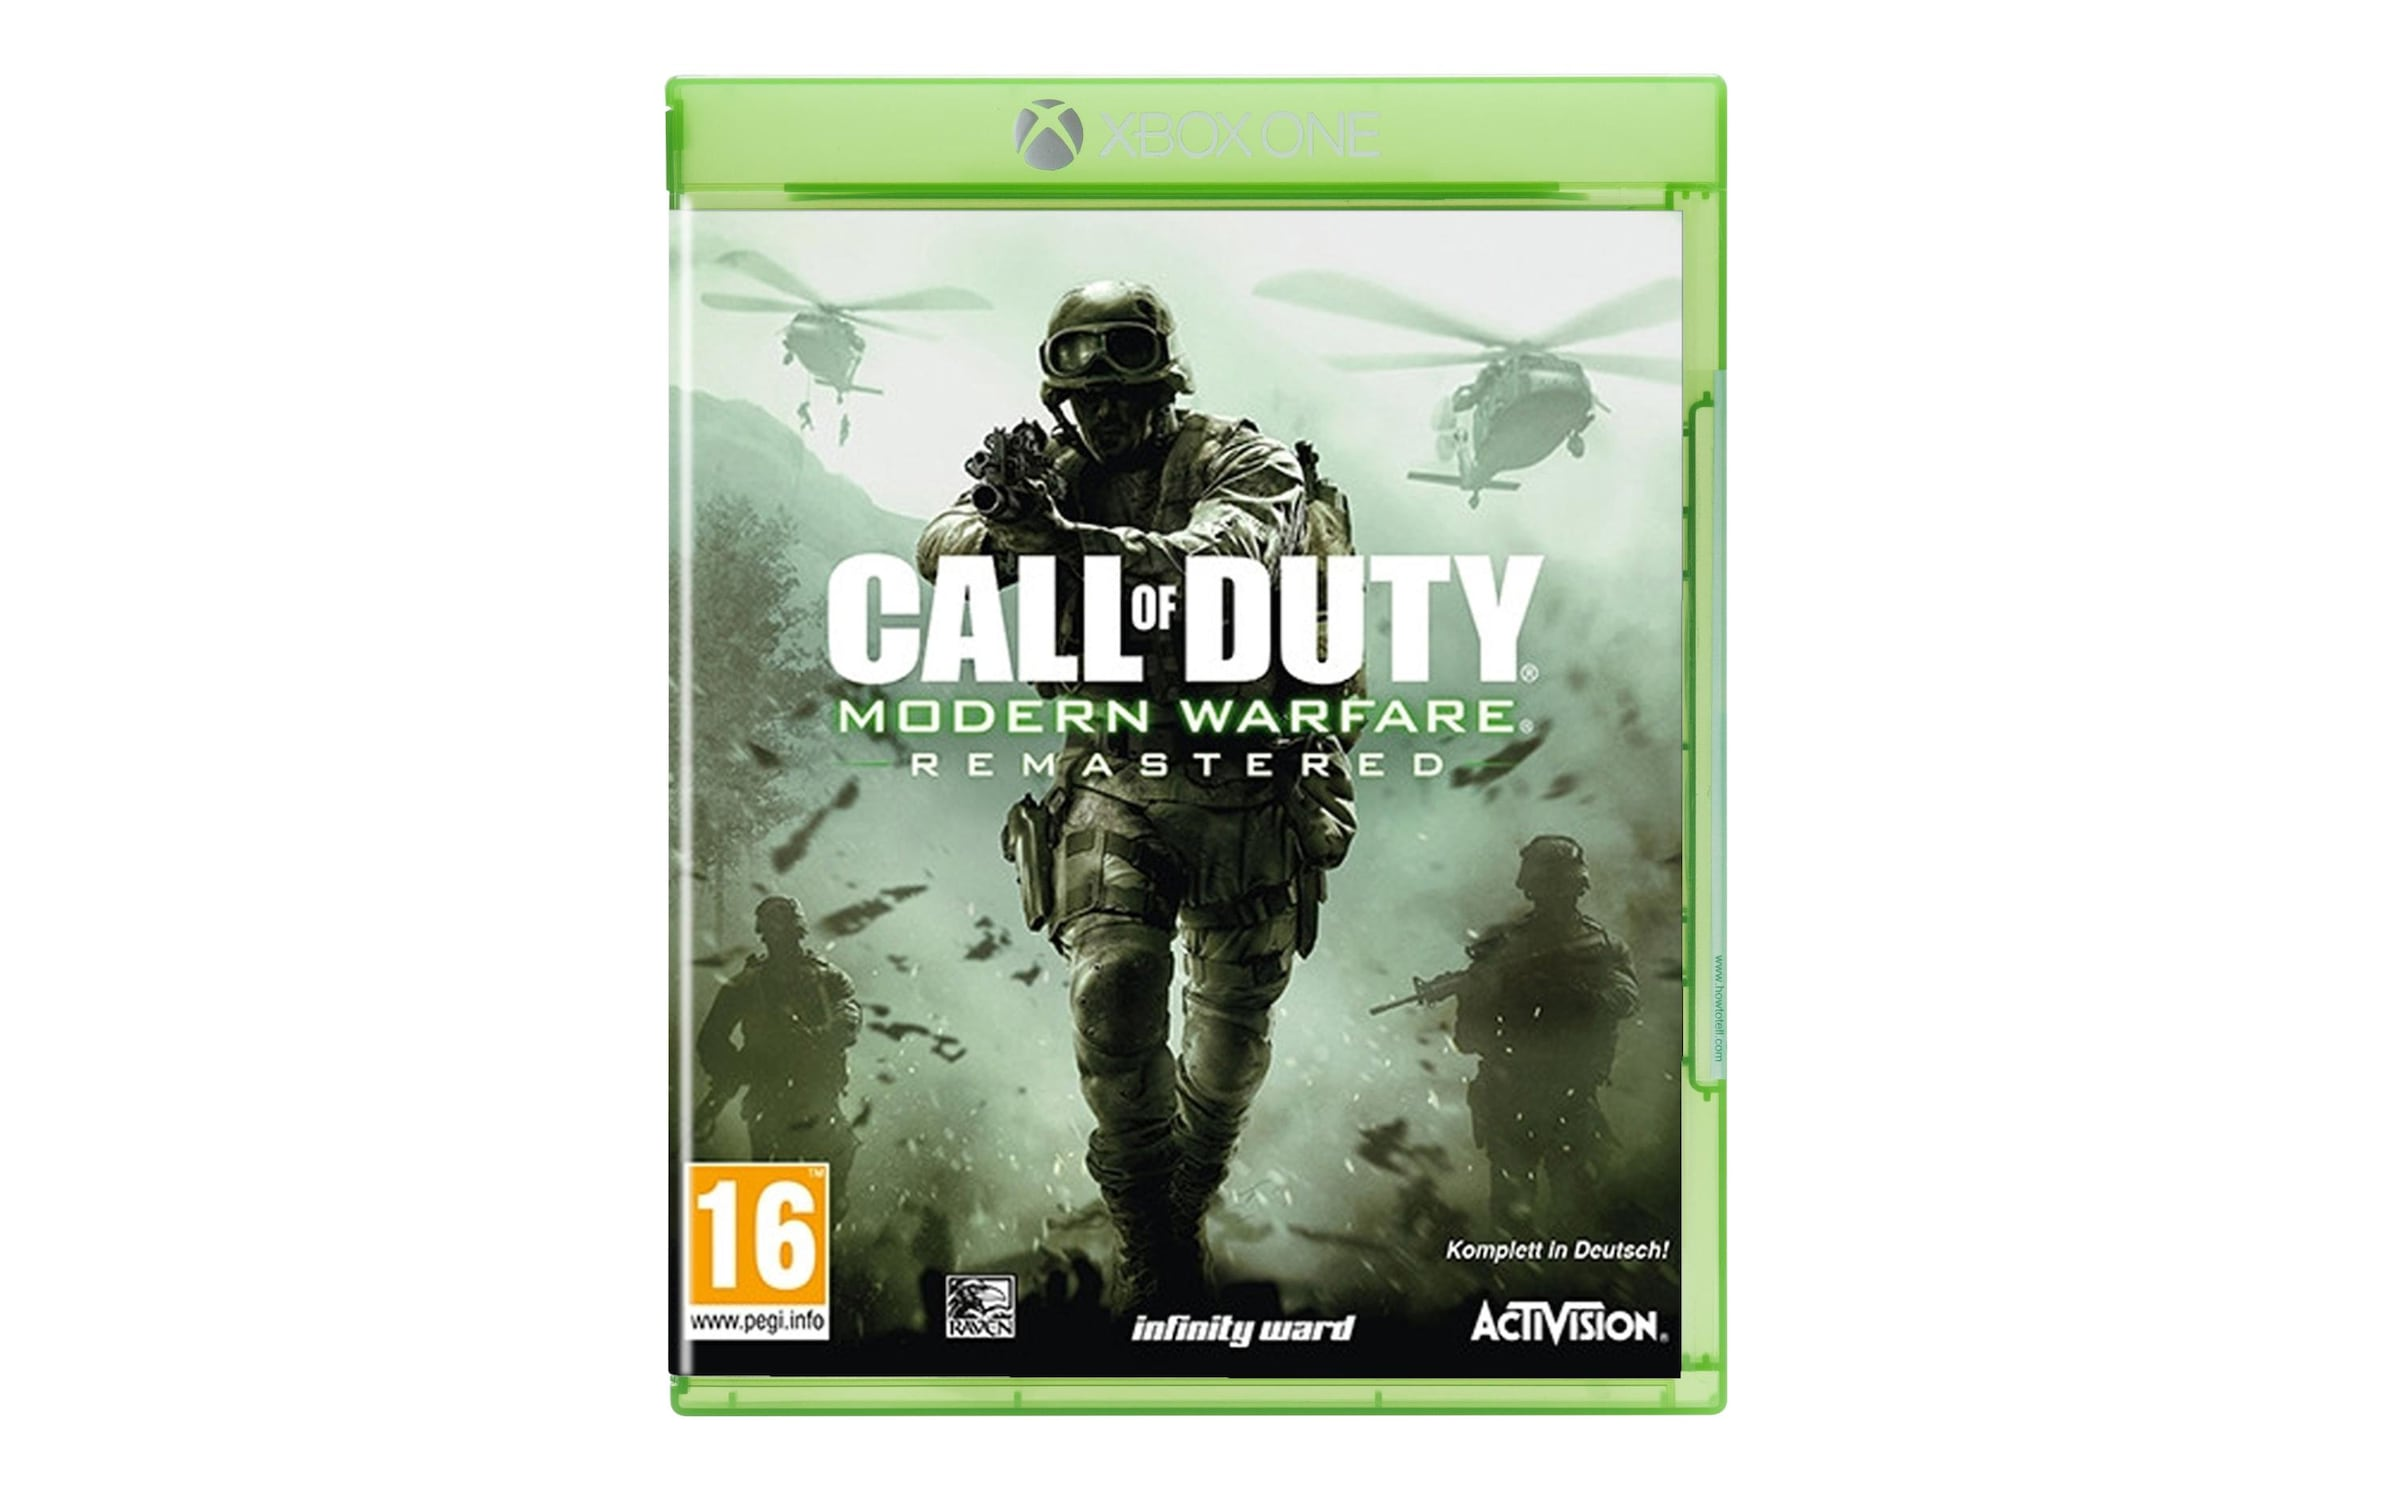 Image of Blizzard Call of Duty: Modern Warfare Remastered, Activision